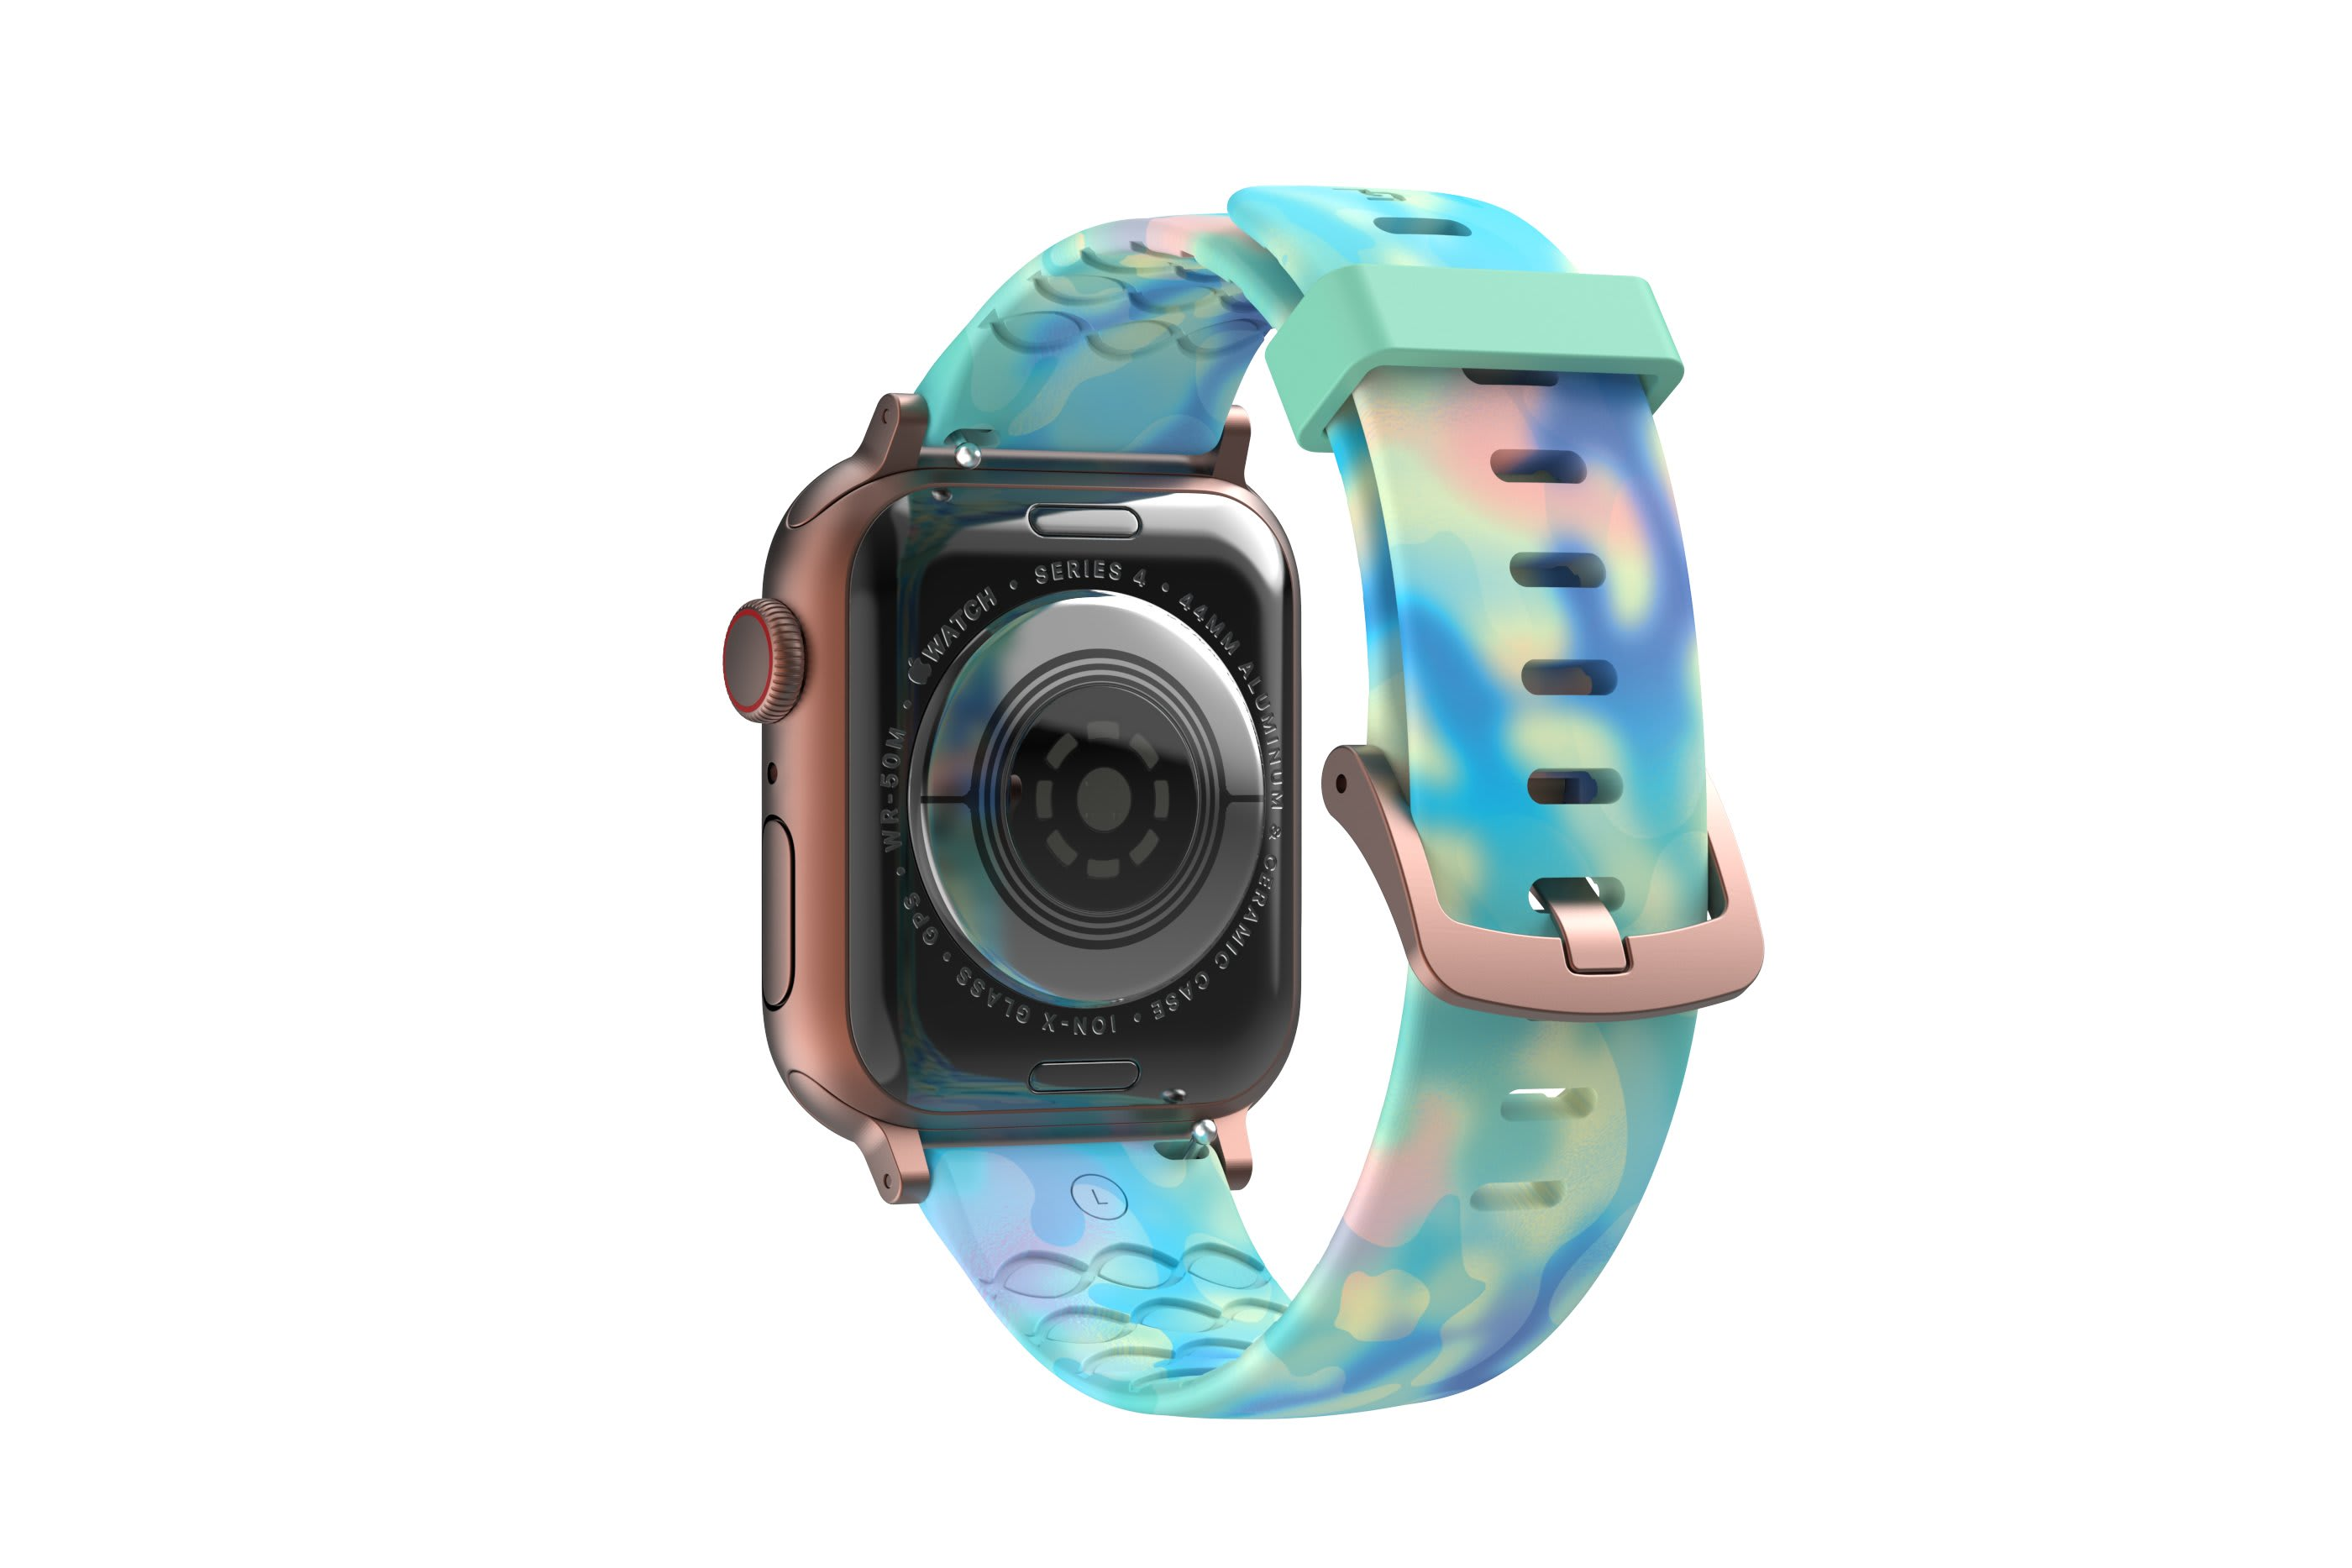 Opal -  apple watch band with rose gold hardware viewed from top down